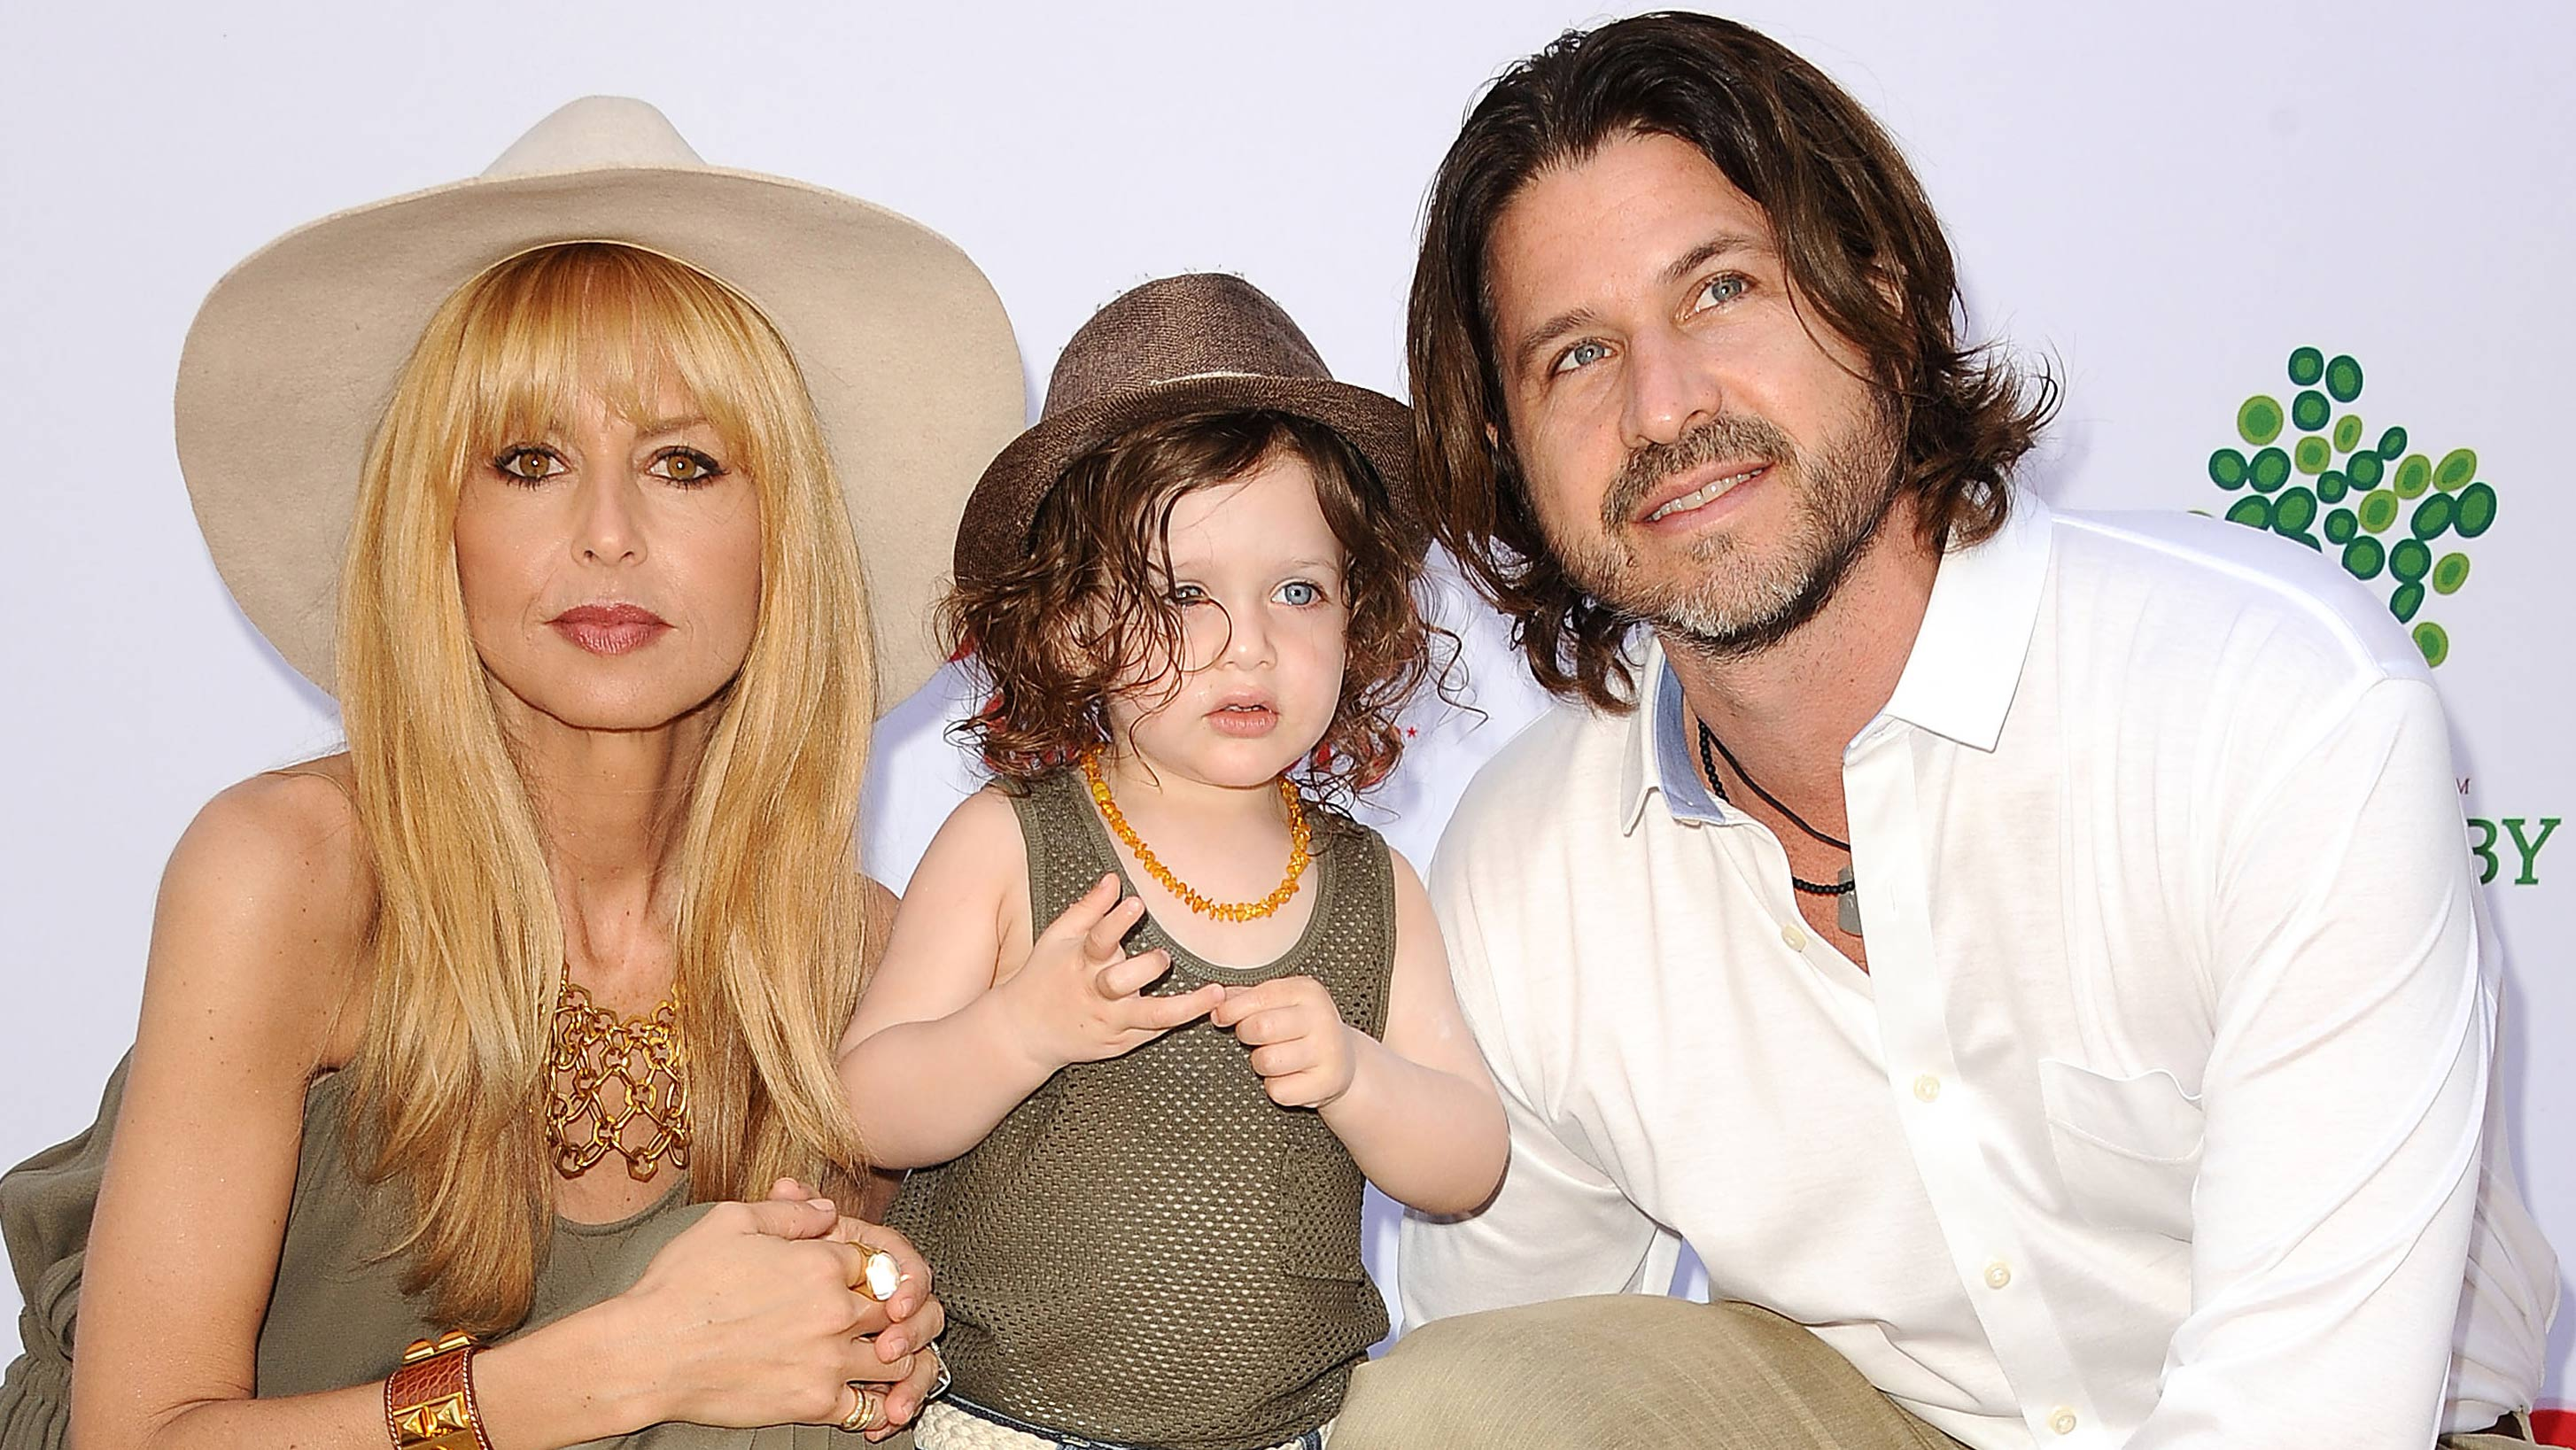 Rachel Zoe with husband Rodger Berman and son Skyler